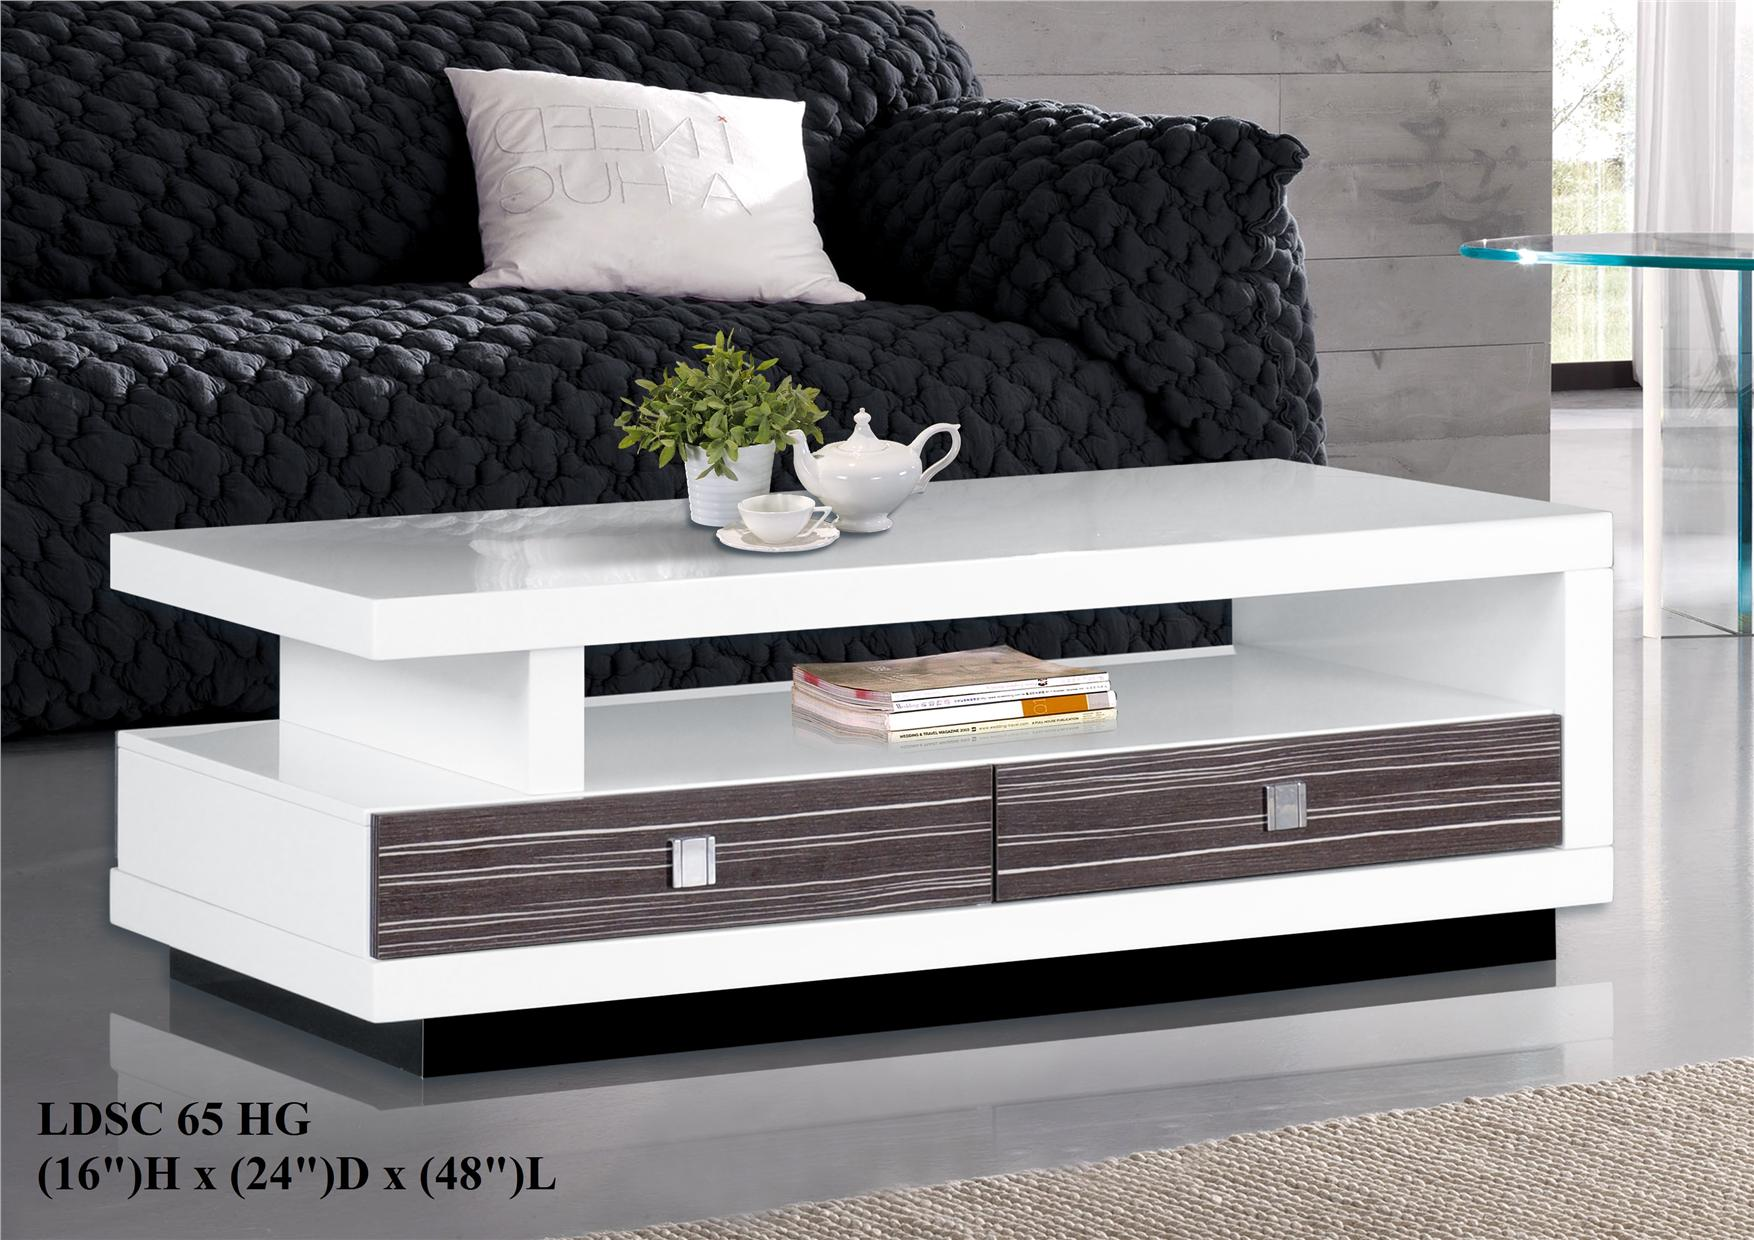 NiceHome Furniture HOT SALE HOT PRICE Coffee Table-LDSC65HG